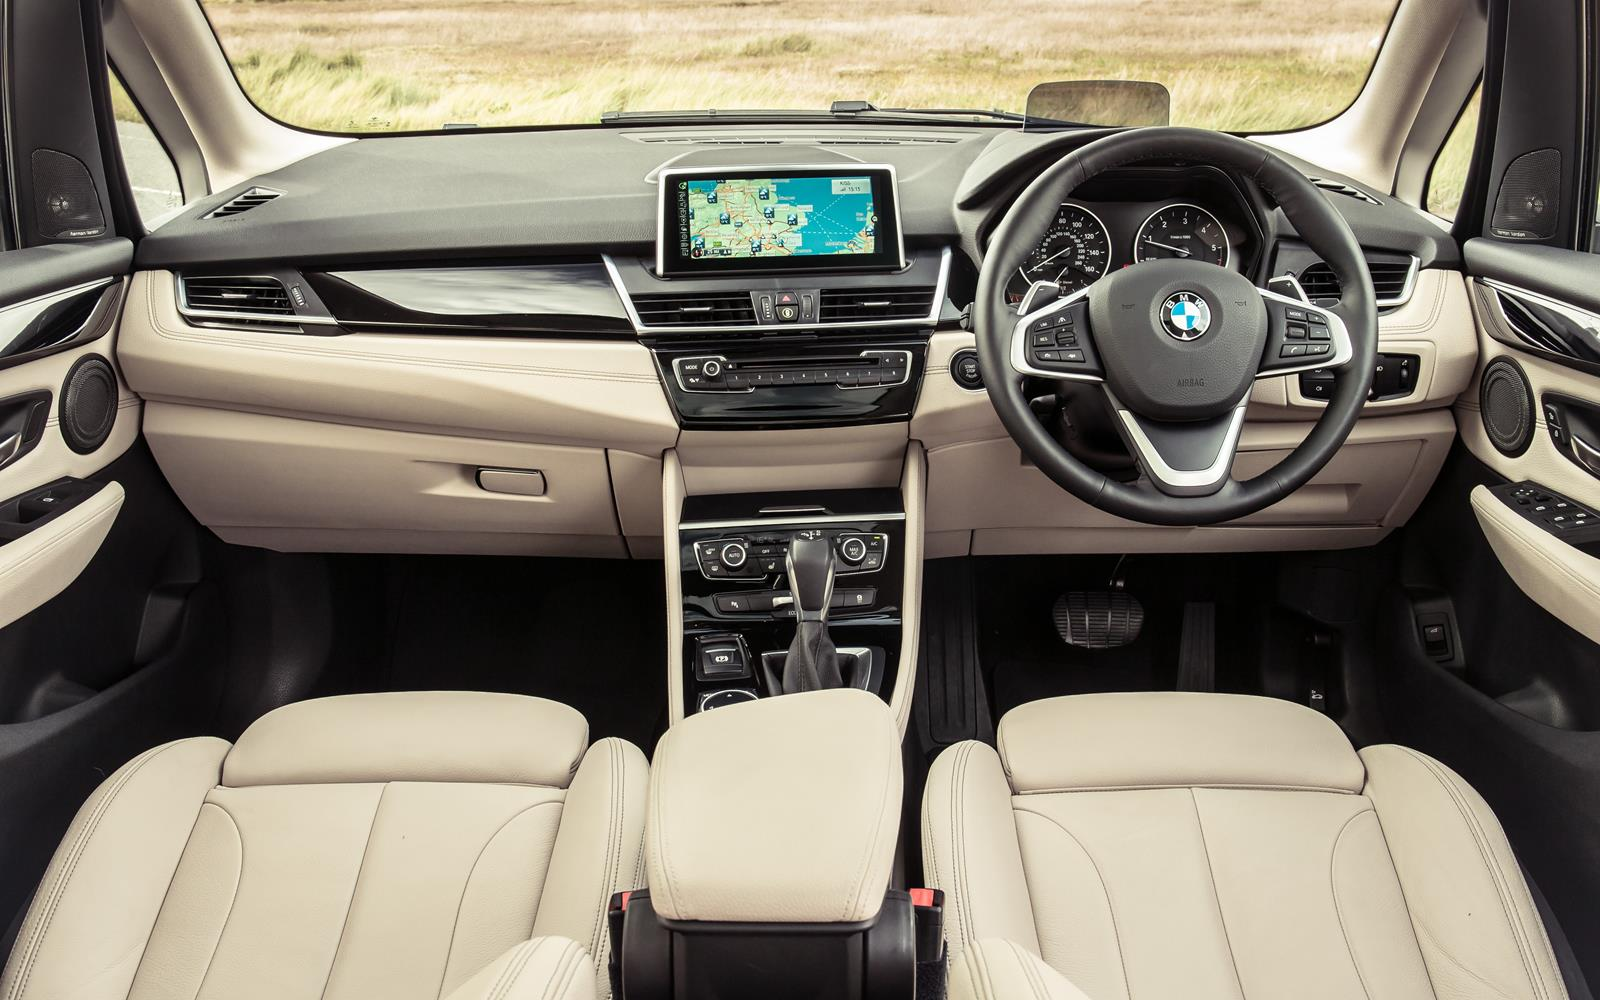 Bmw 2 Series Active Tourer 2014 Interior Front